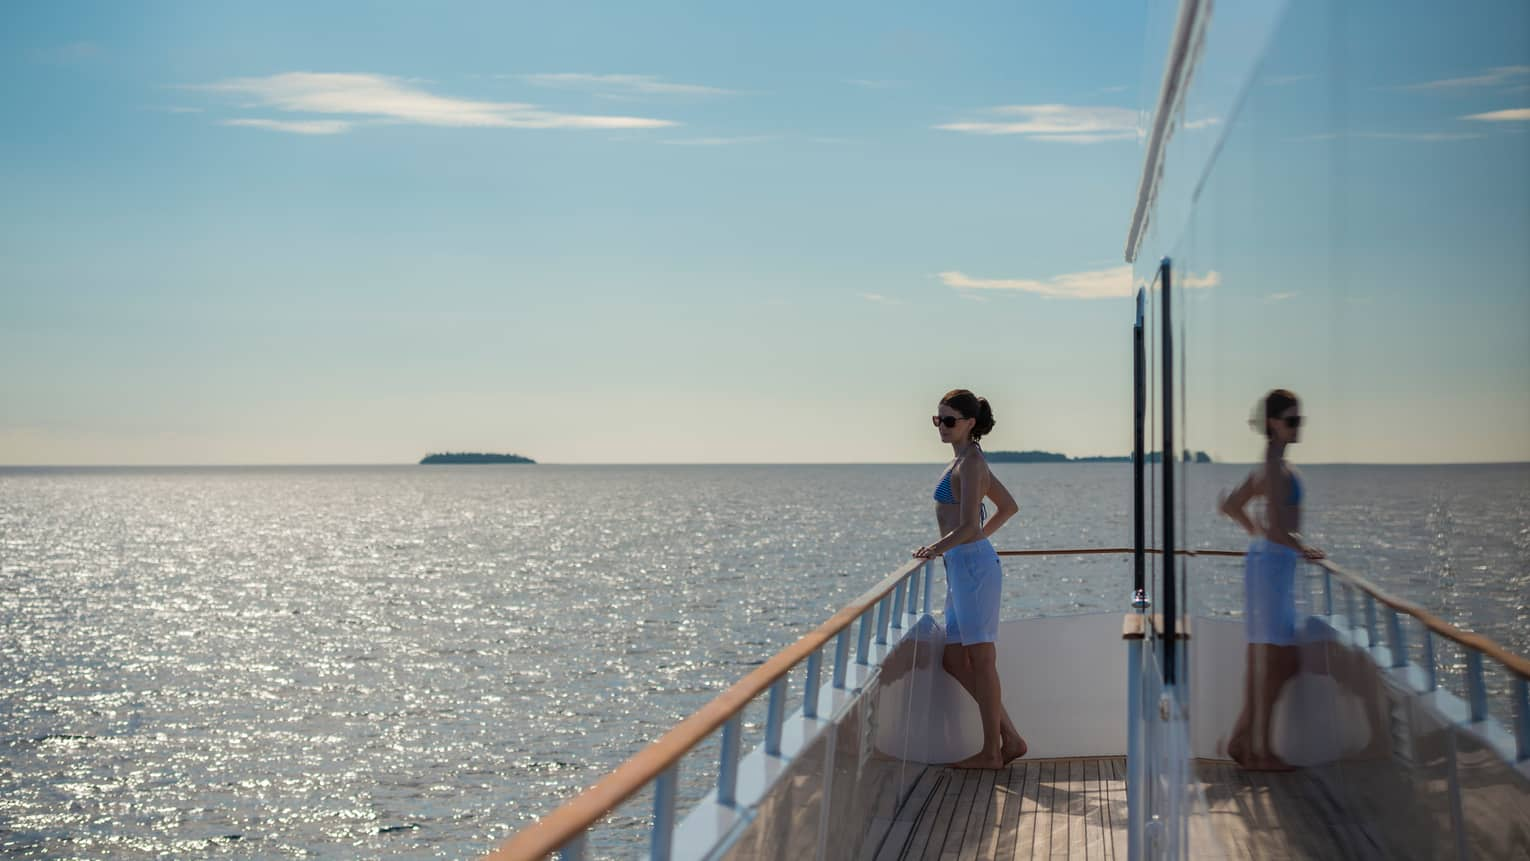 Woman wearing swimsuit stands at yacht balcony, looks out over water